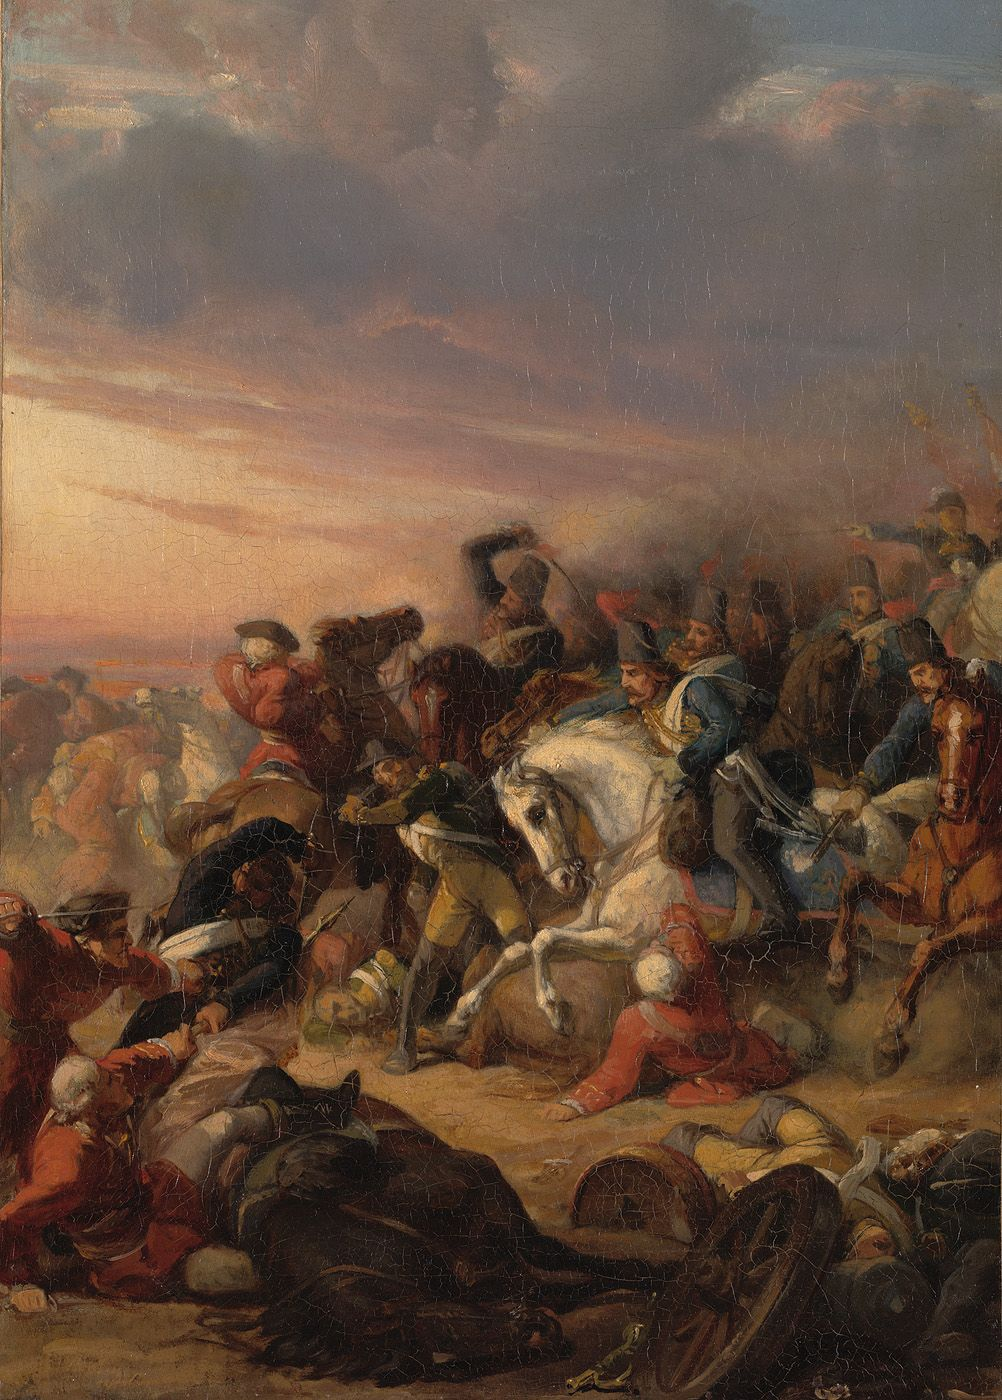 (1799, Oct. 6) Battle of Castricum - French-Dutch victory over the British and Russians.